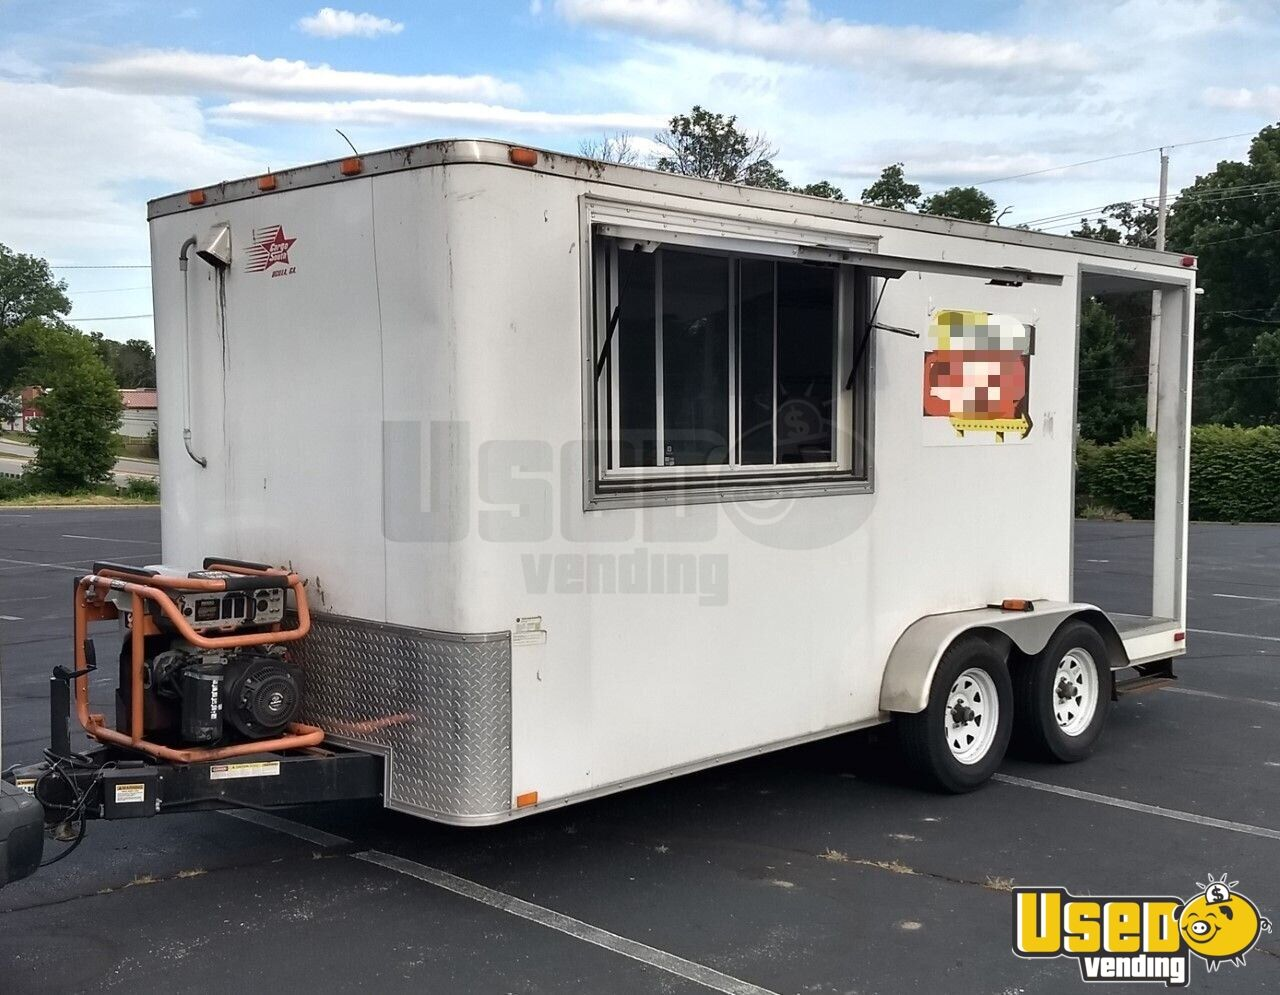 2013 Cargo Bbq Trailer All-purpose Food Trailer Concession Window Missouri for Sale - 2